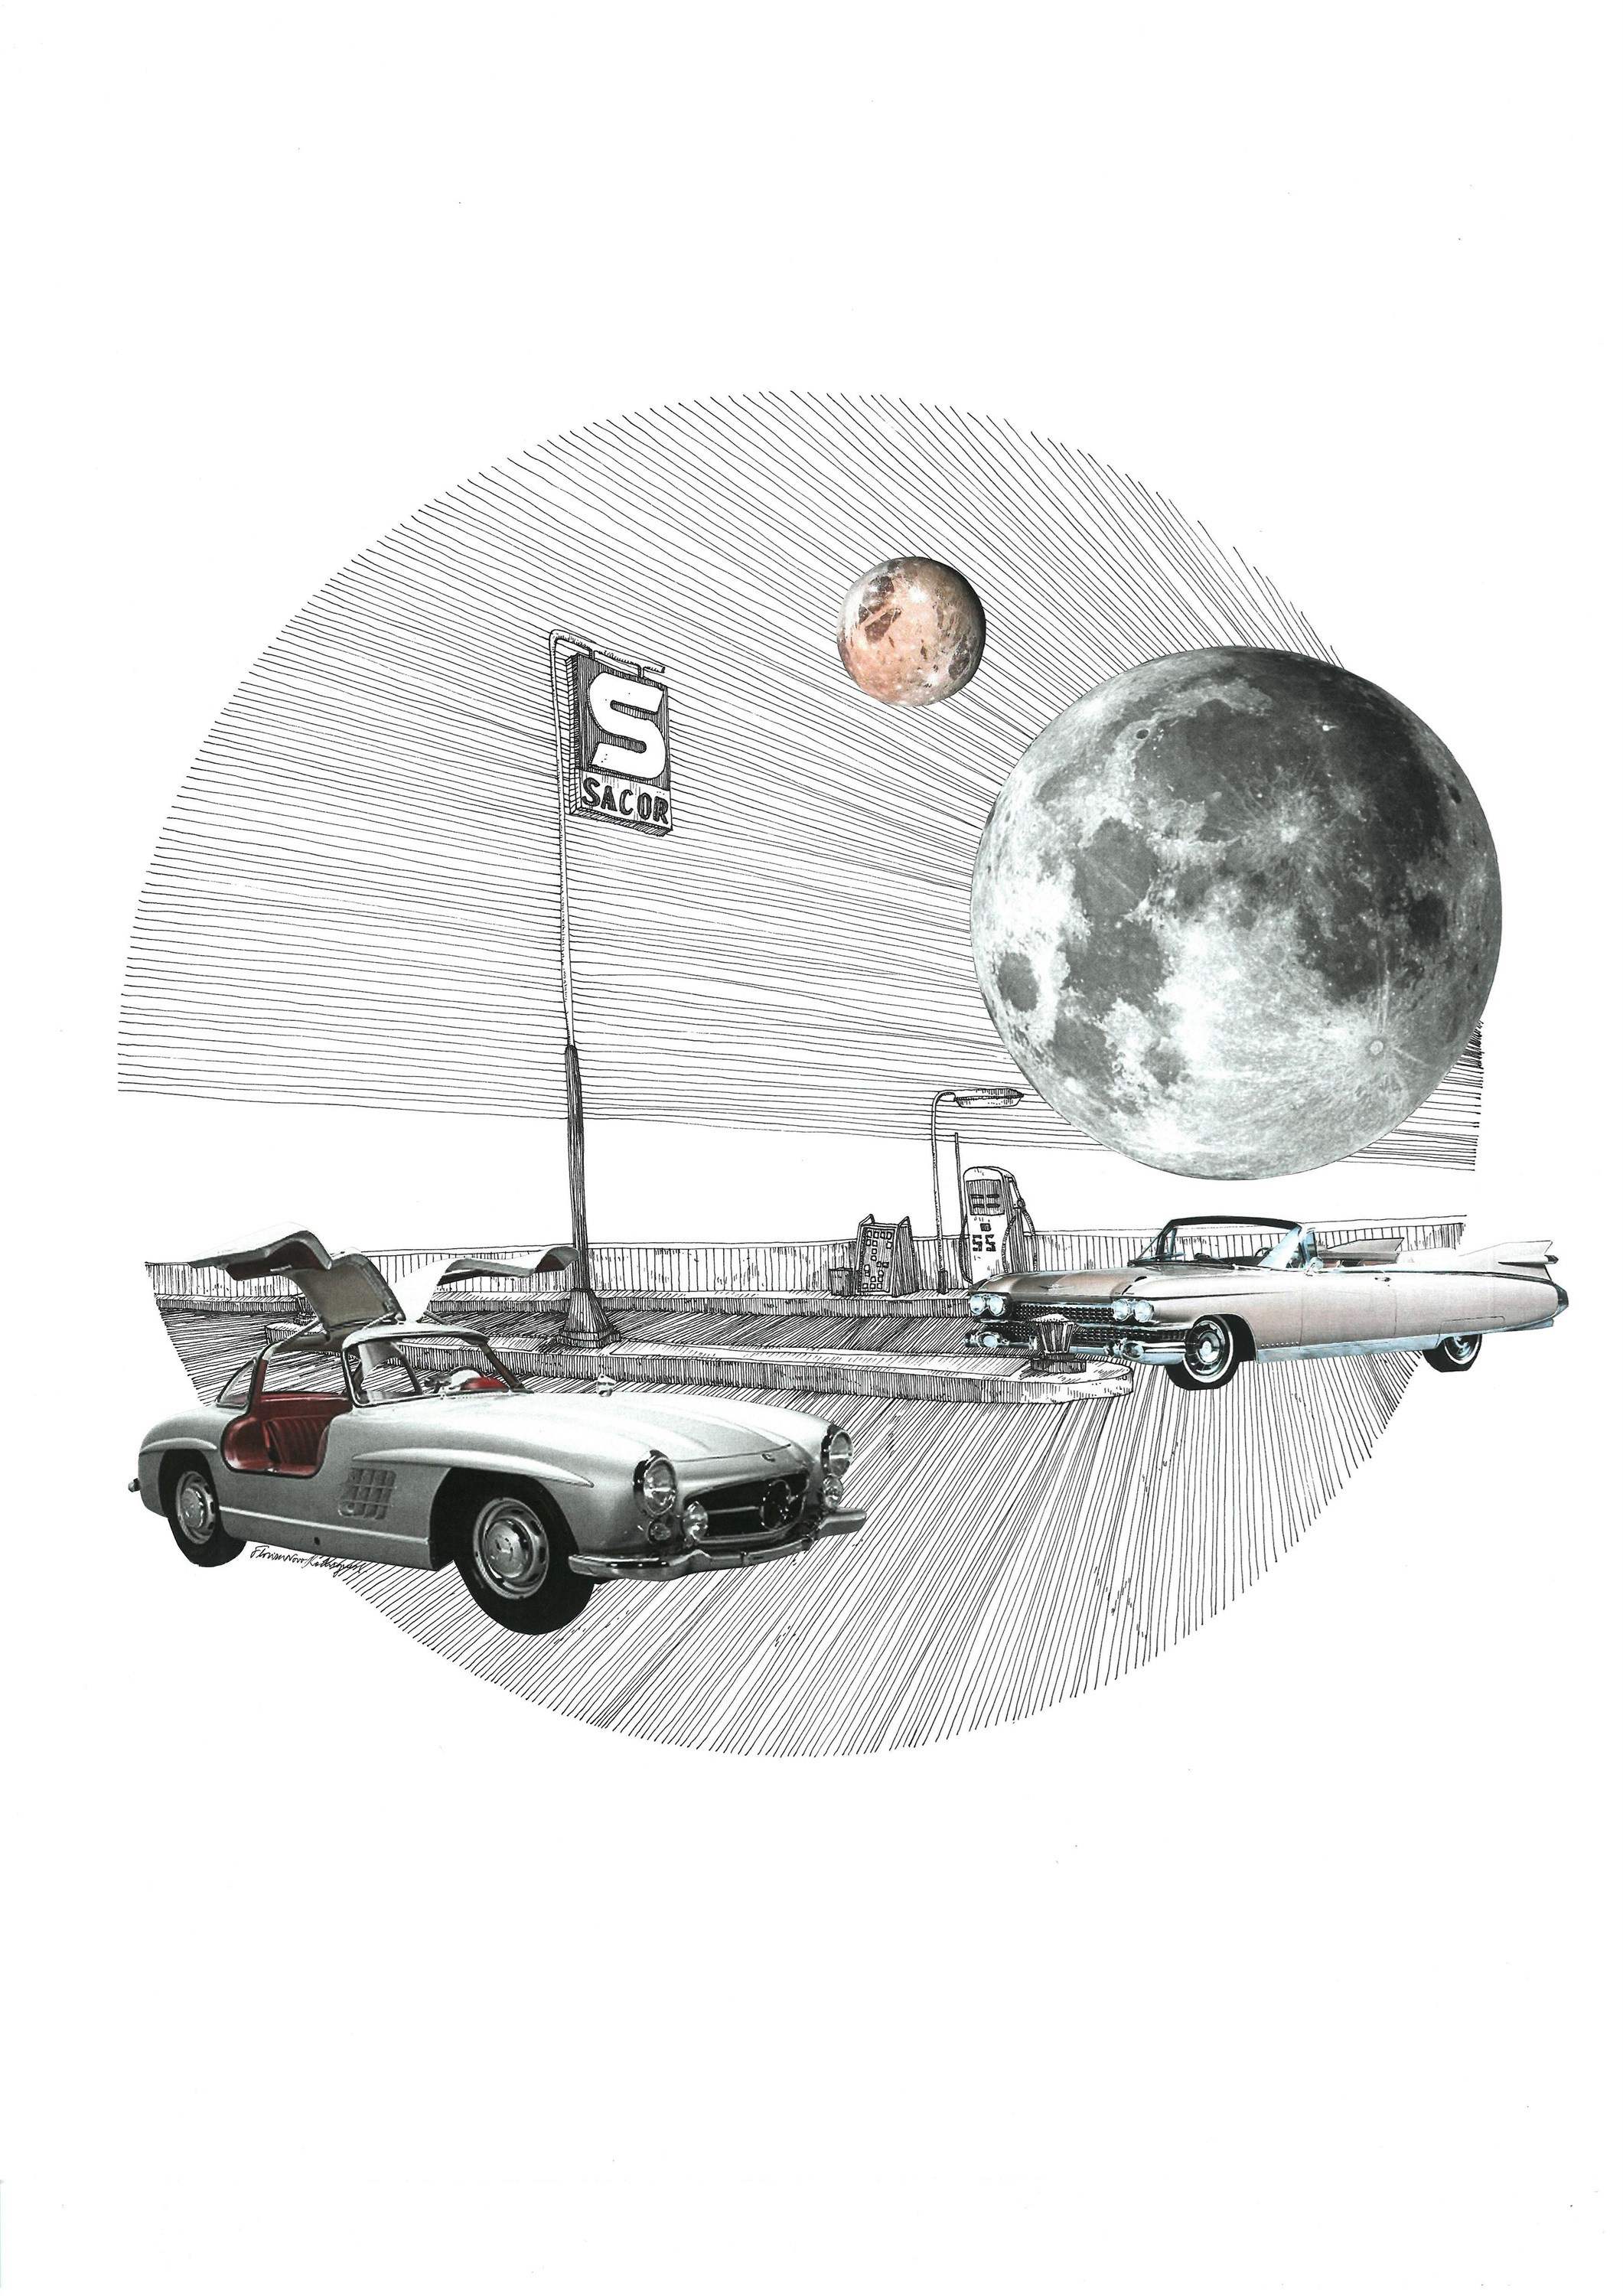 Cadillac El Dorado, original Architecture Collage Drawing and Illustration by Florisa Novo Rodrigues